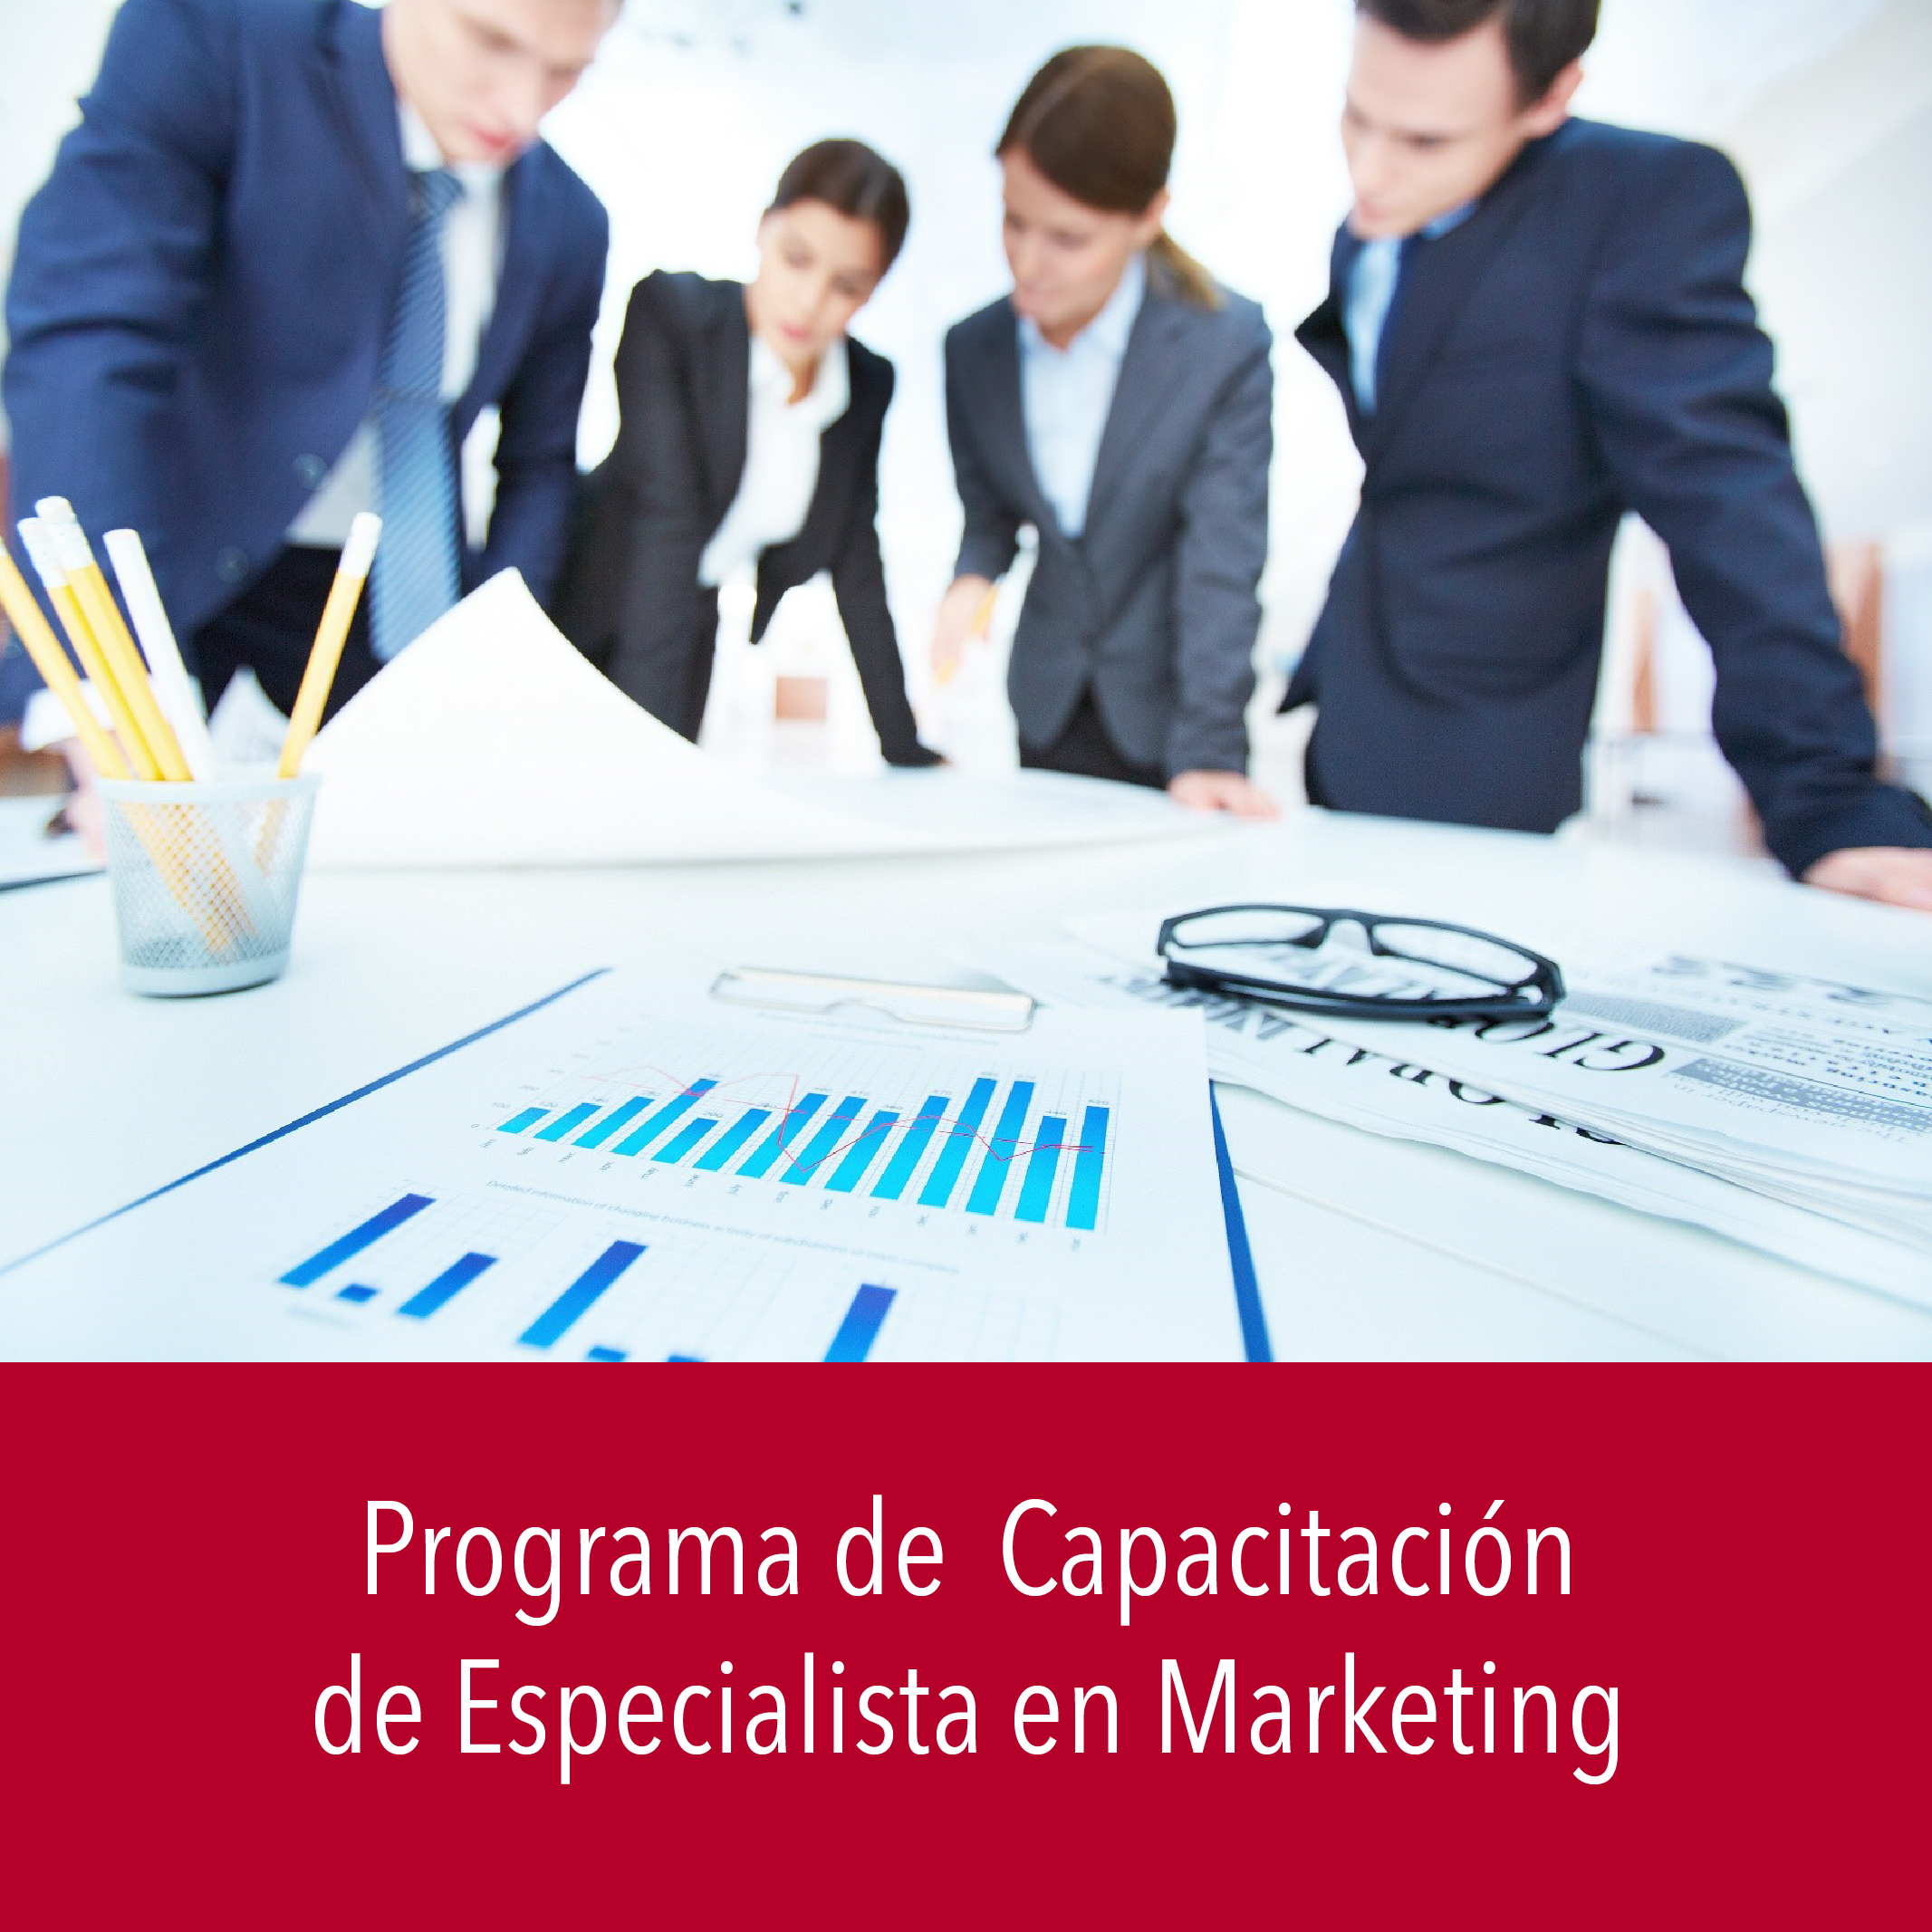 Especialista en Marketing